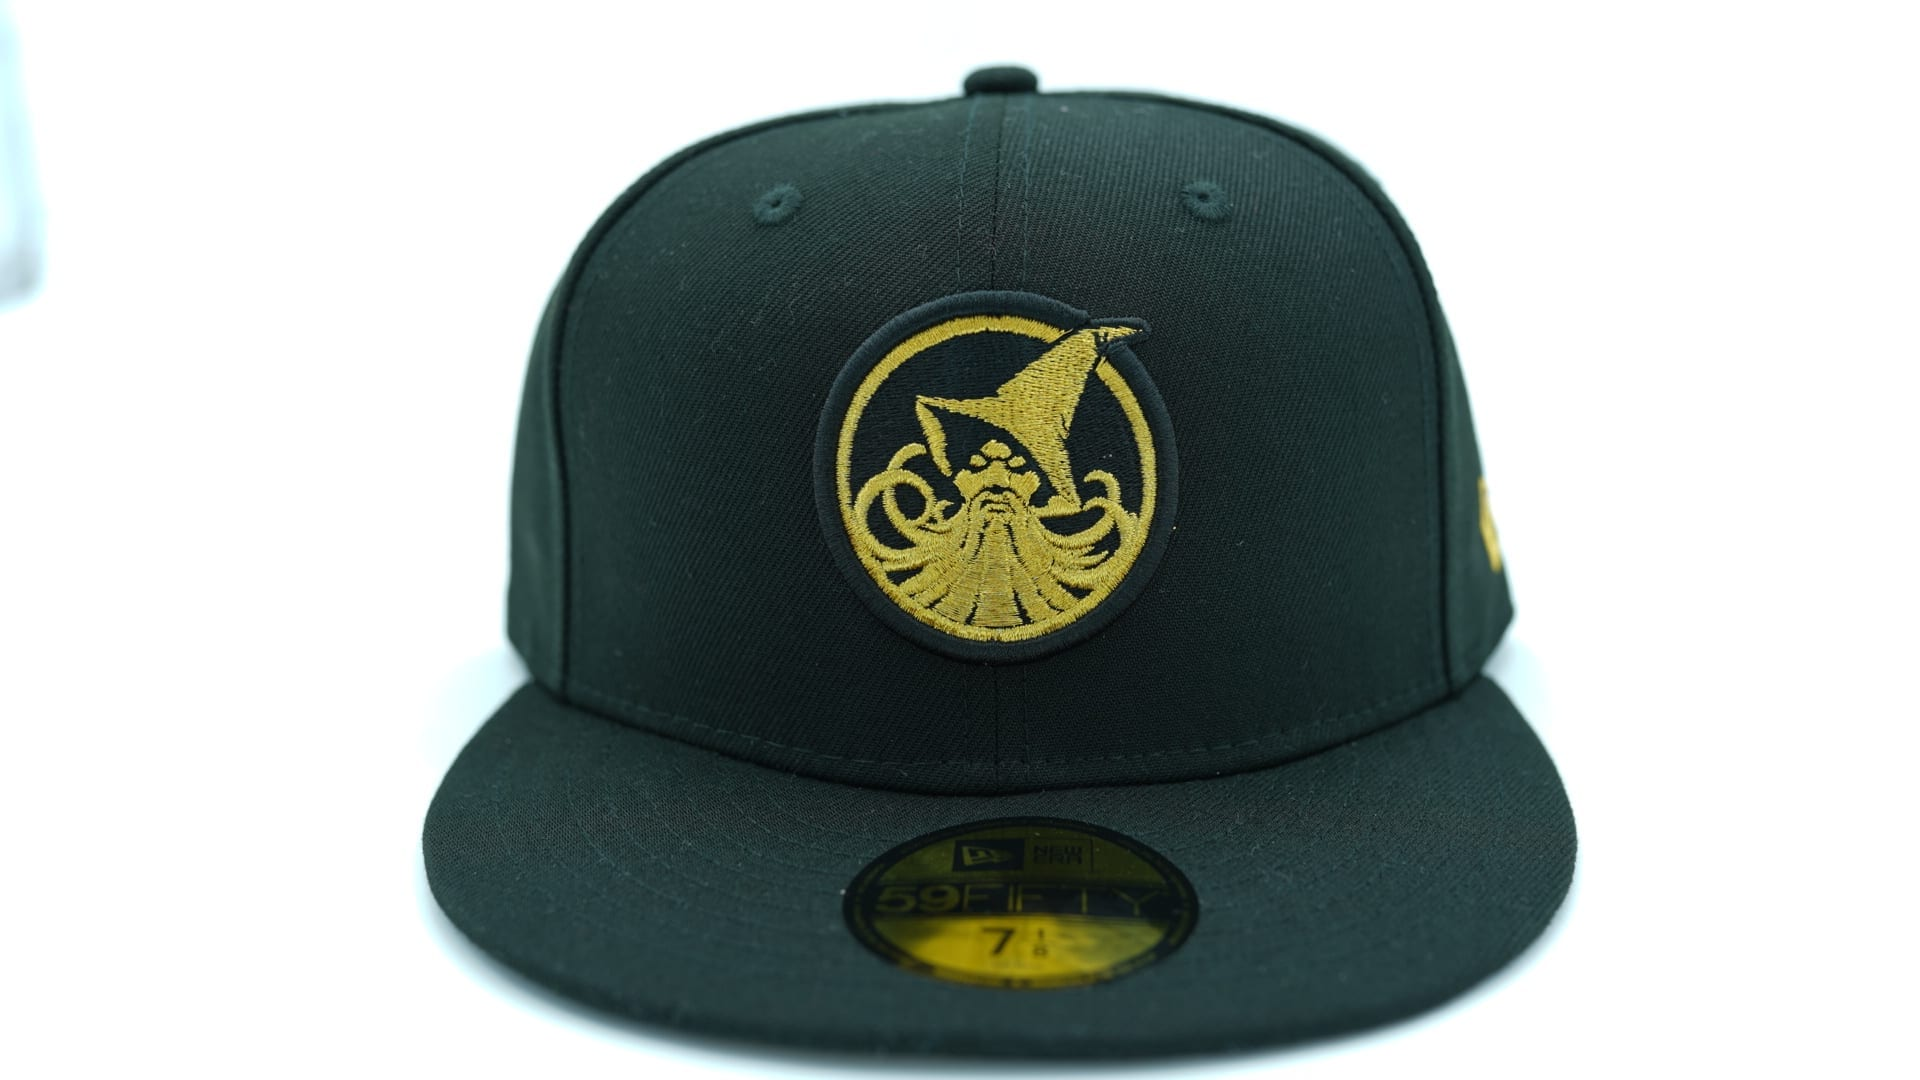 Urban Camo Bats 59Fifty Fitted Cap by DIONIC BRAND x NEW ERA